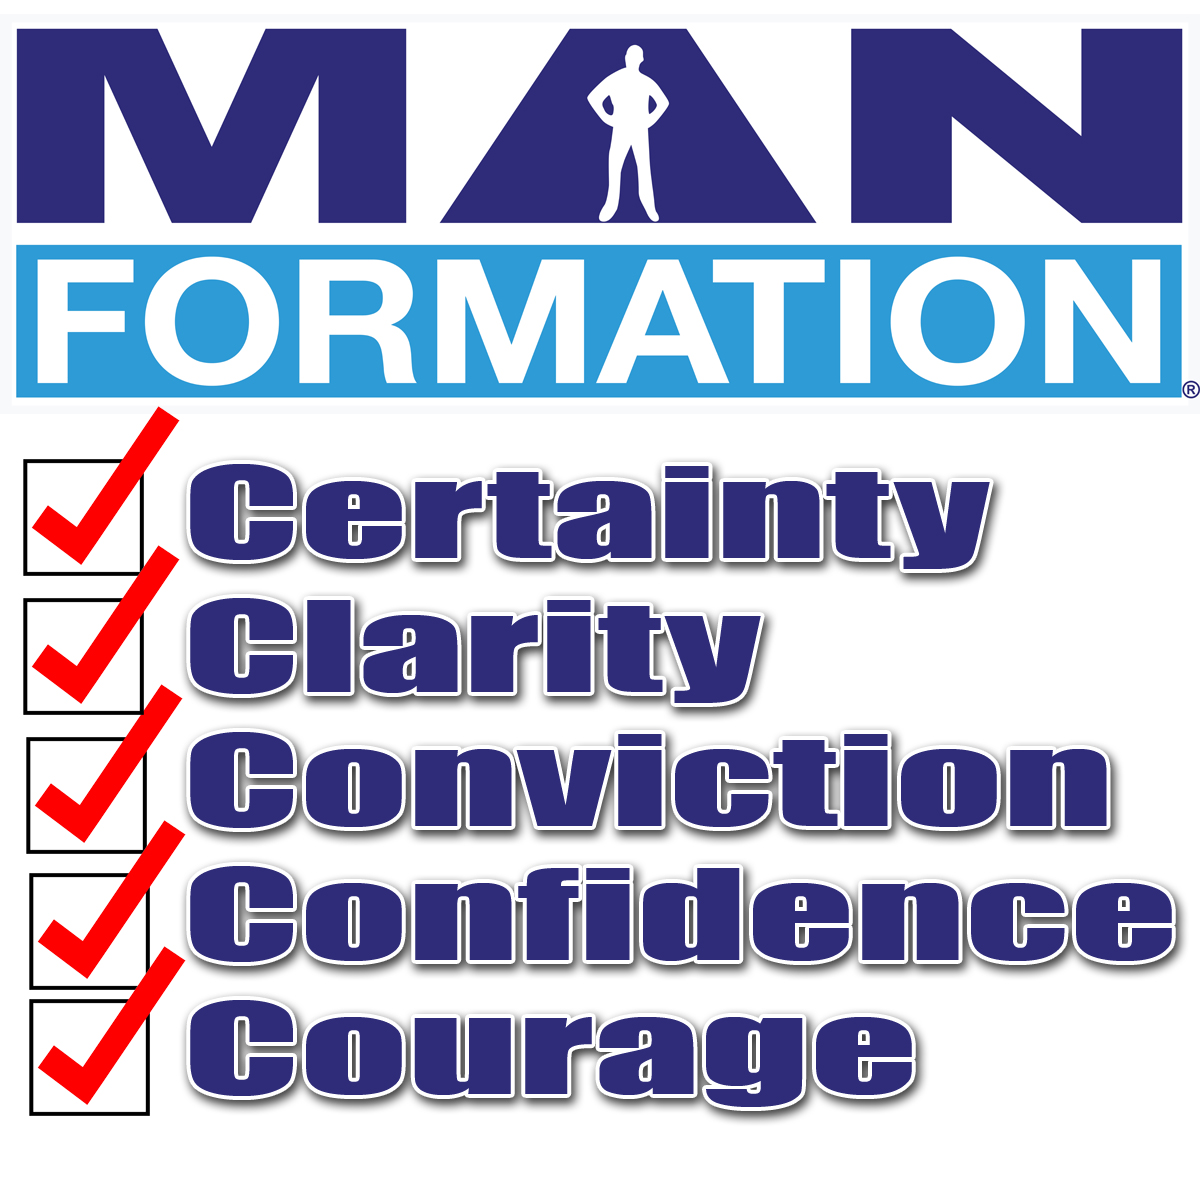 manformation checklist Exclusive Weekly One on One Coaching with Skip La Cour